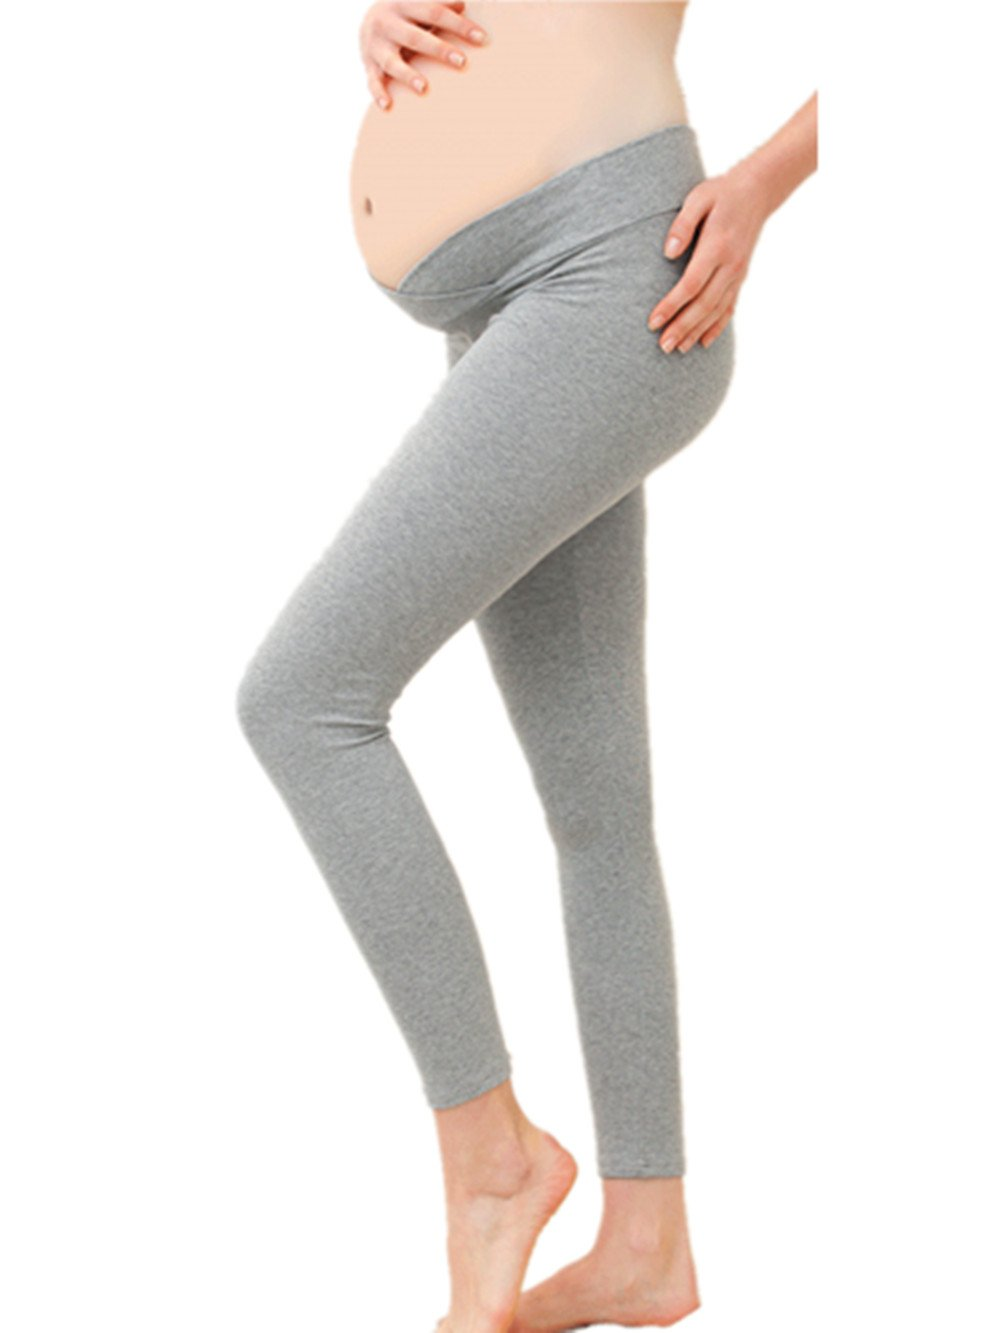 William & Winnie Maternity Pregnant Leggings Seamless Elastic Low Waist Under The Belly Pants for Spring Summer(Grey-L)